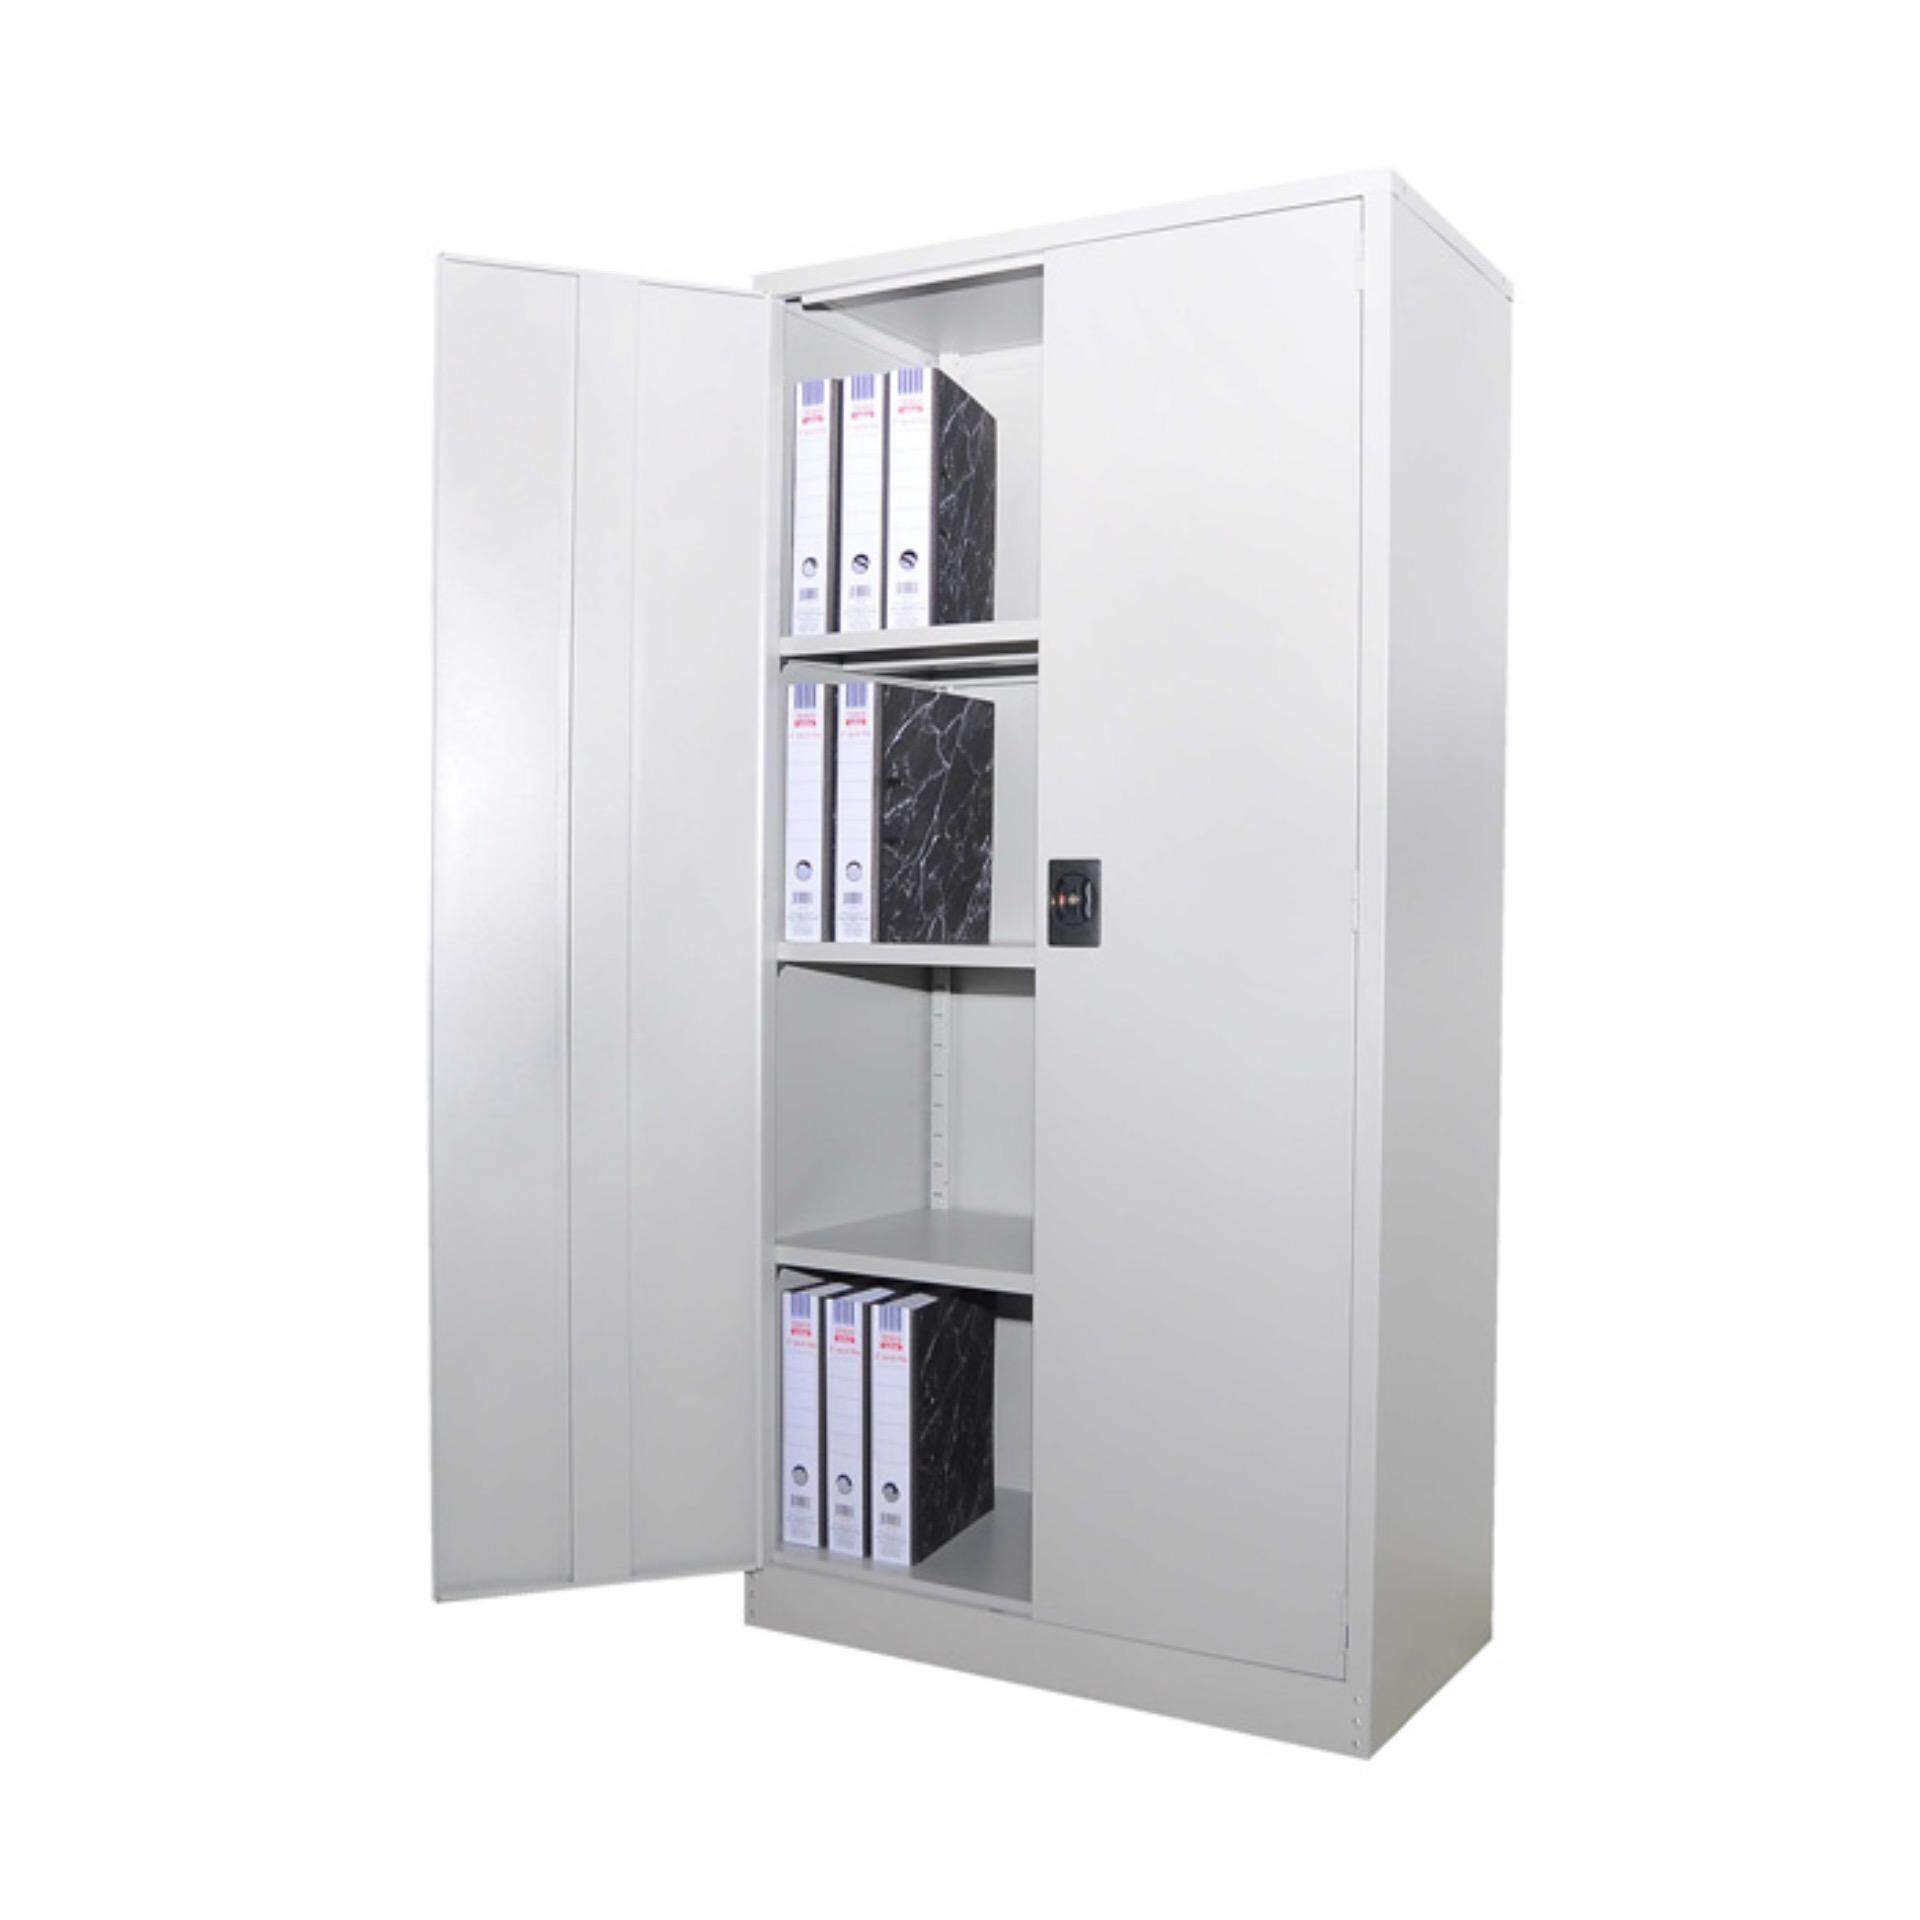 Ready-Fixed Deco Home Office Furniture Durable 2-DoorStorage Cabinet Filing Cupboard Metal Locker L915MM X W457MM X H1828MM Pre-Order 2 Week